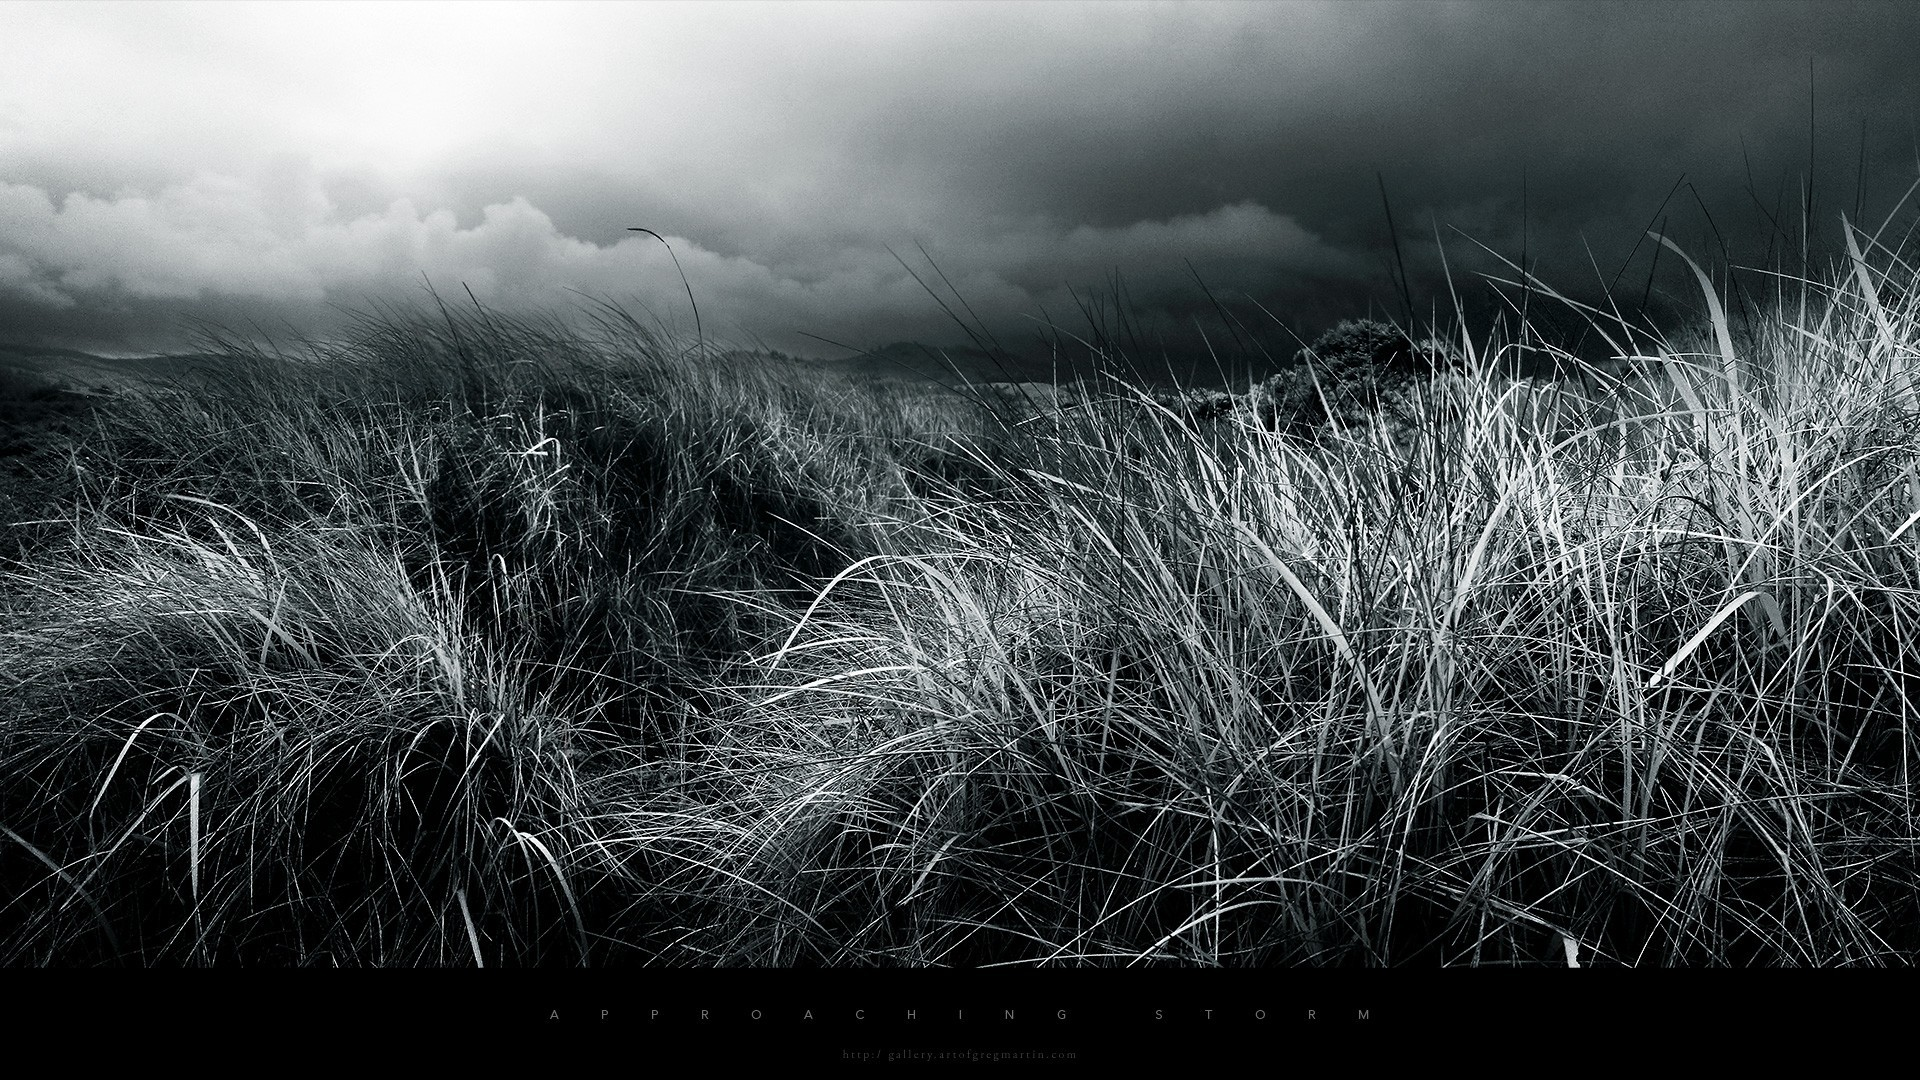 Black and white desktop backgrounds 80 images - White background 1920x1080 ...